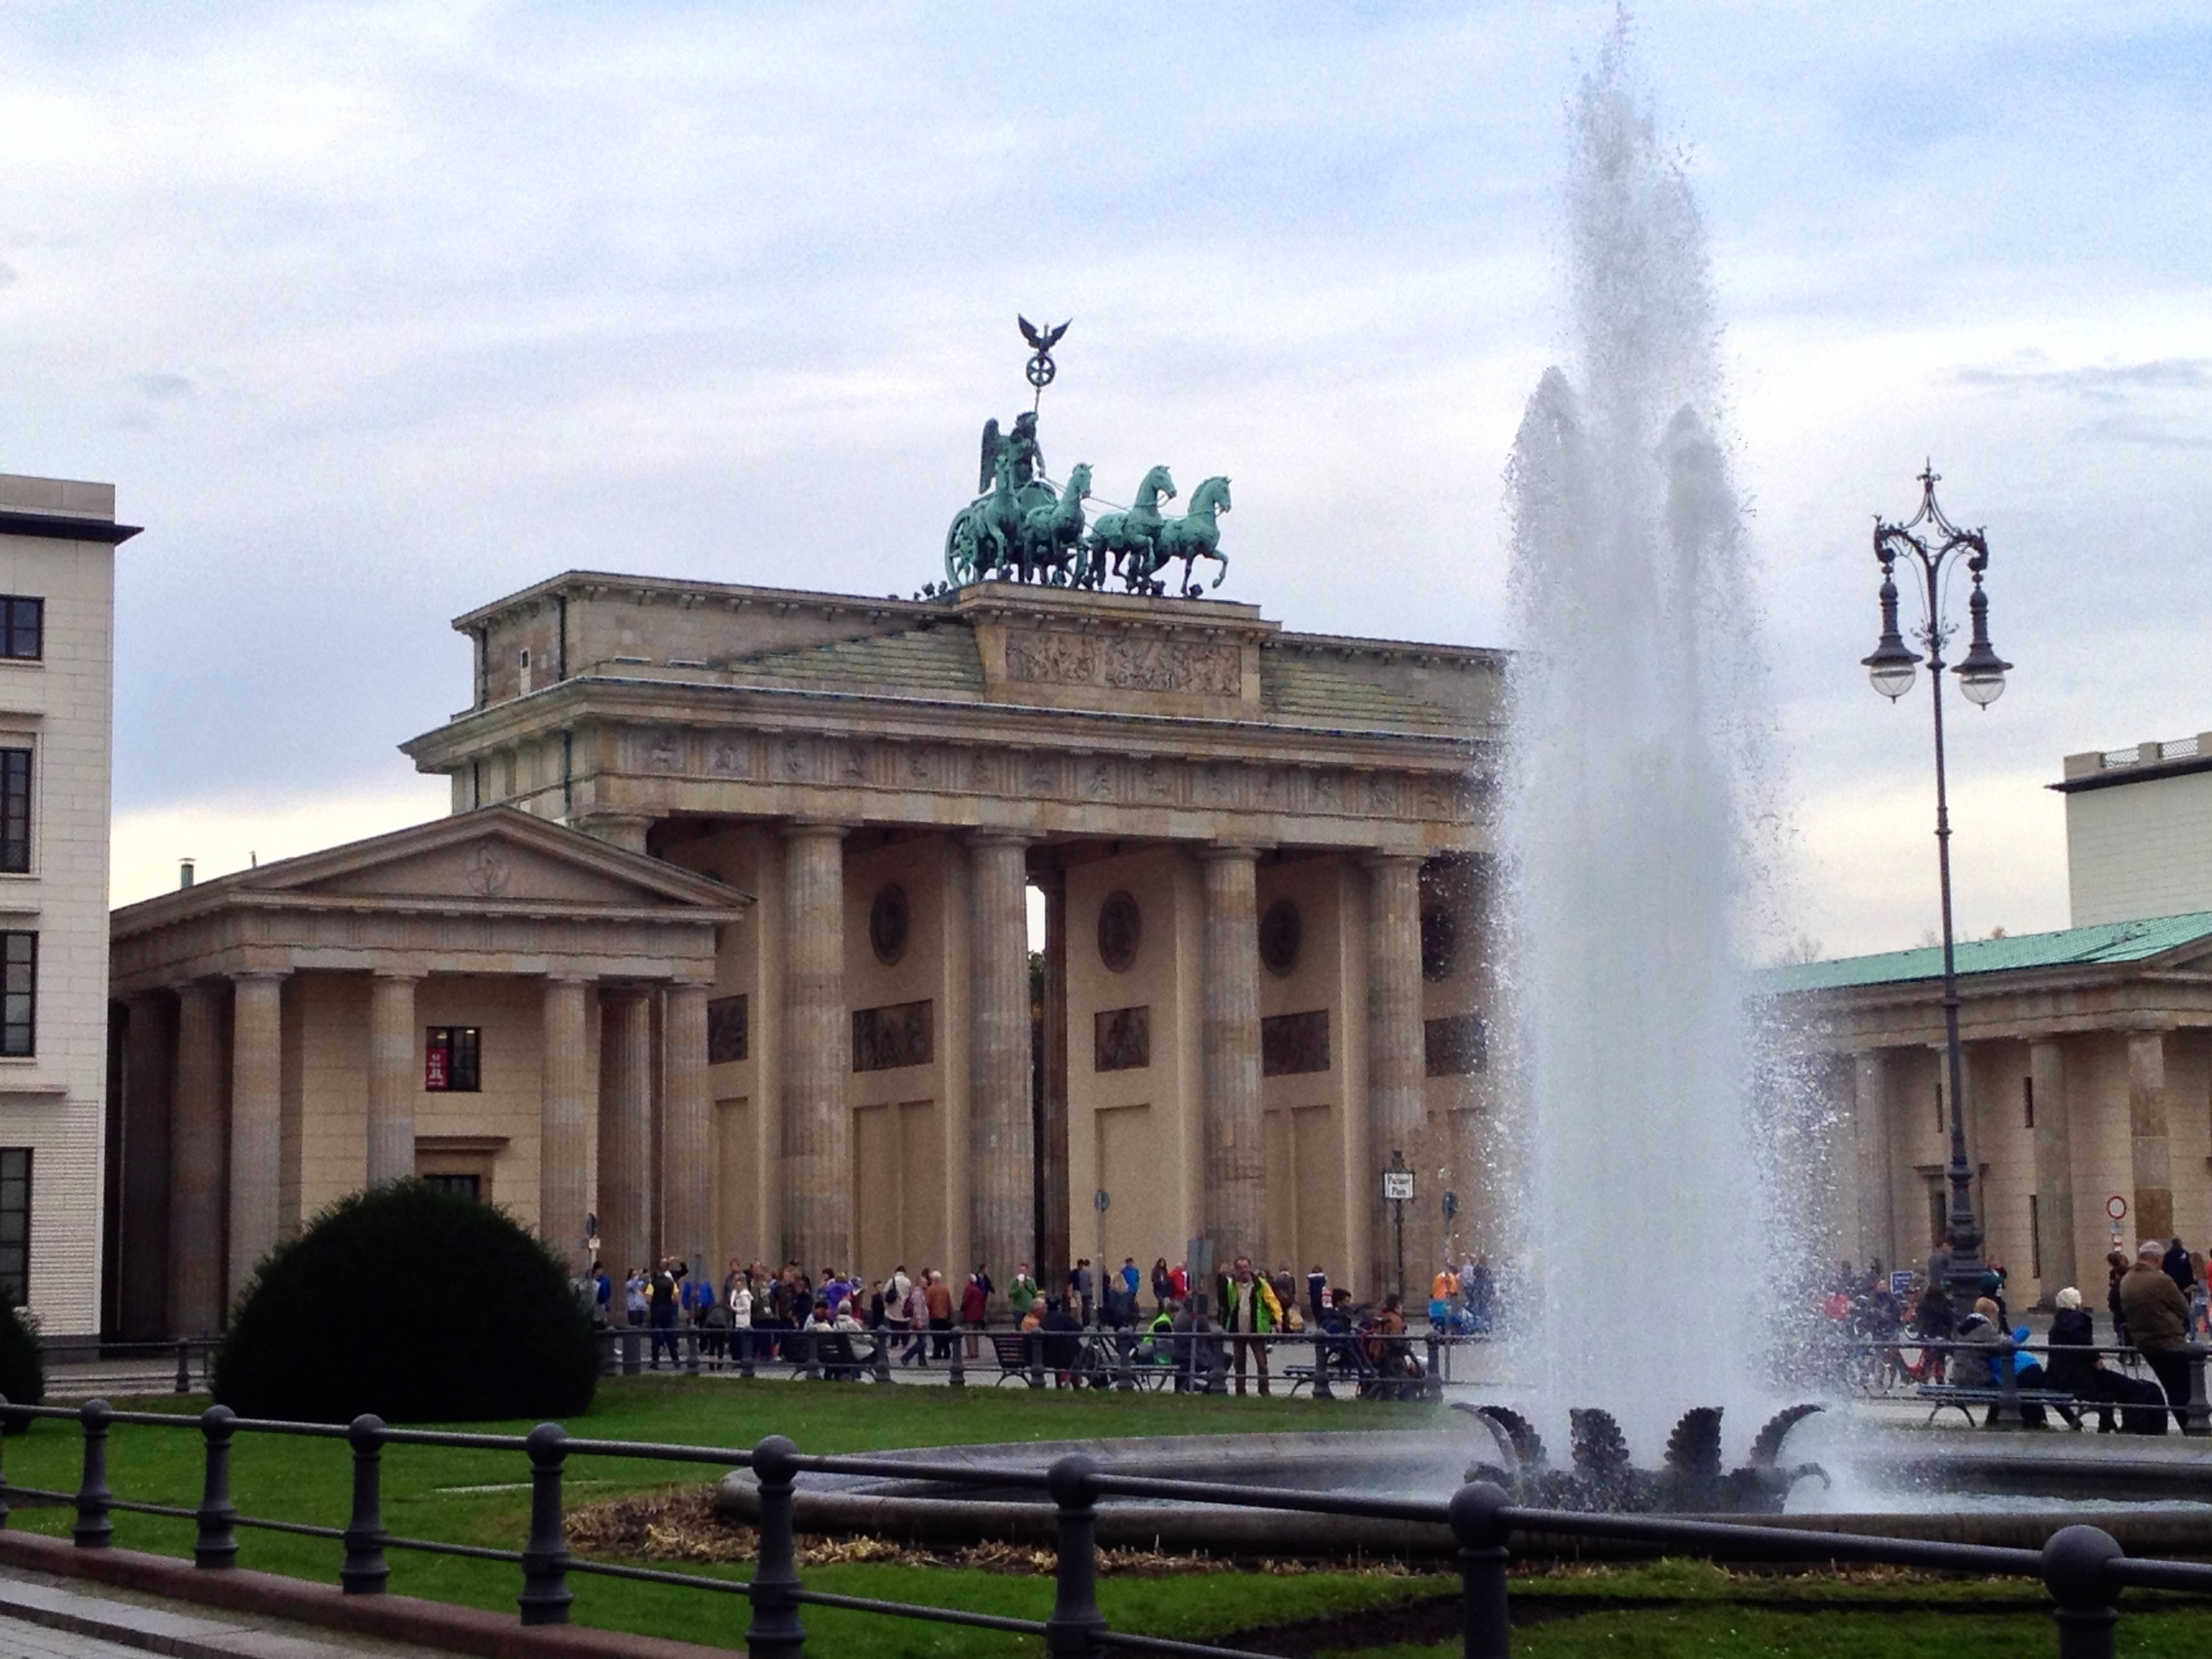 Pariser Platz and the Brandenburg Gate